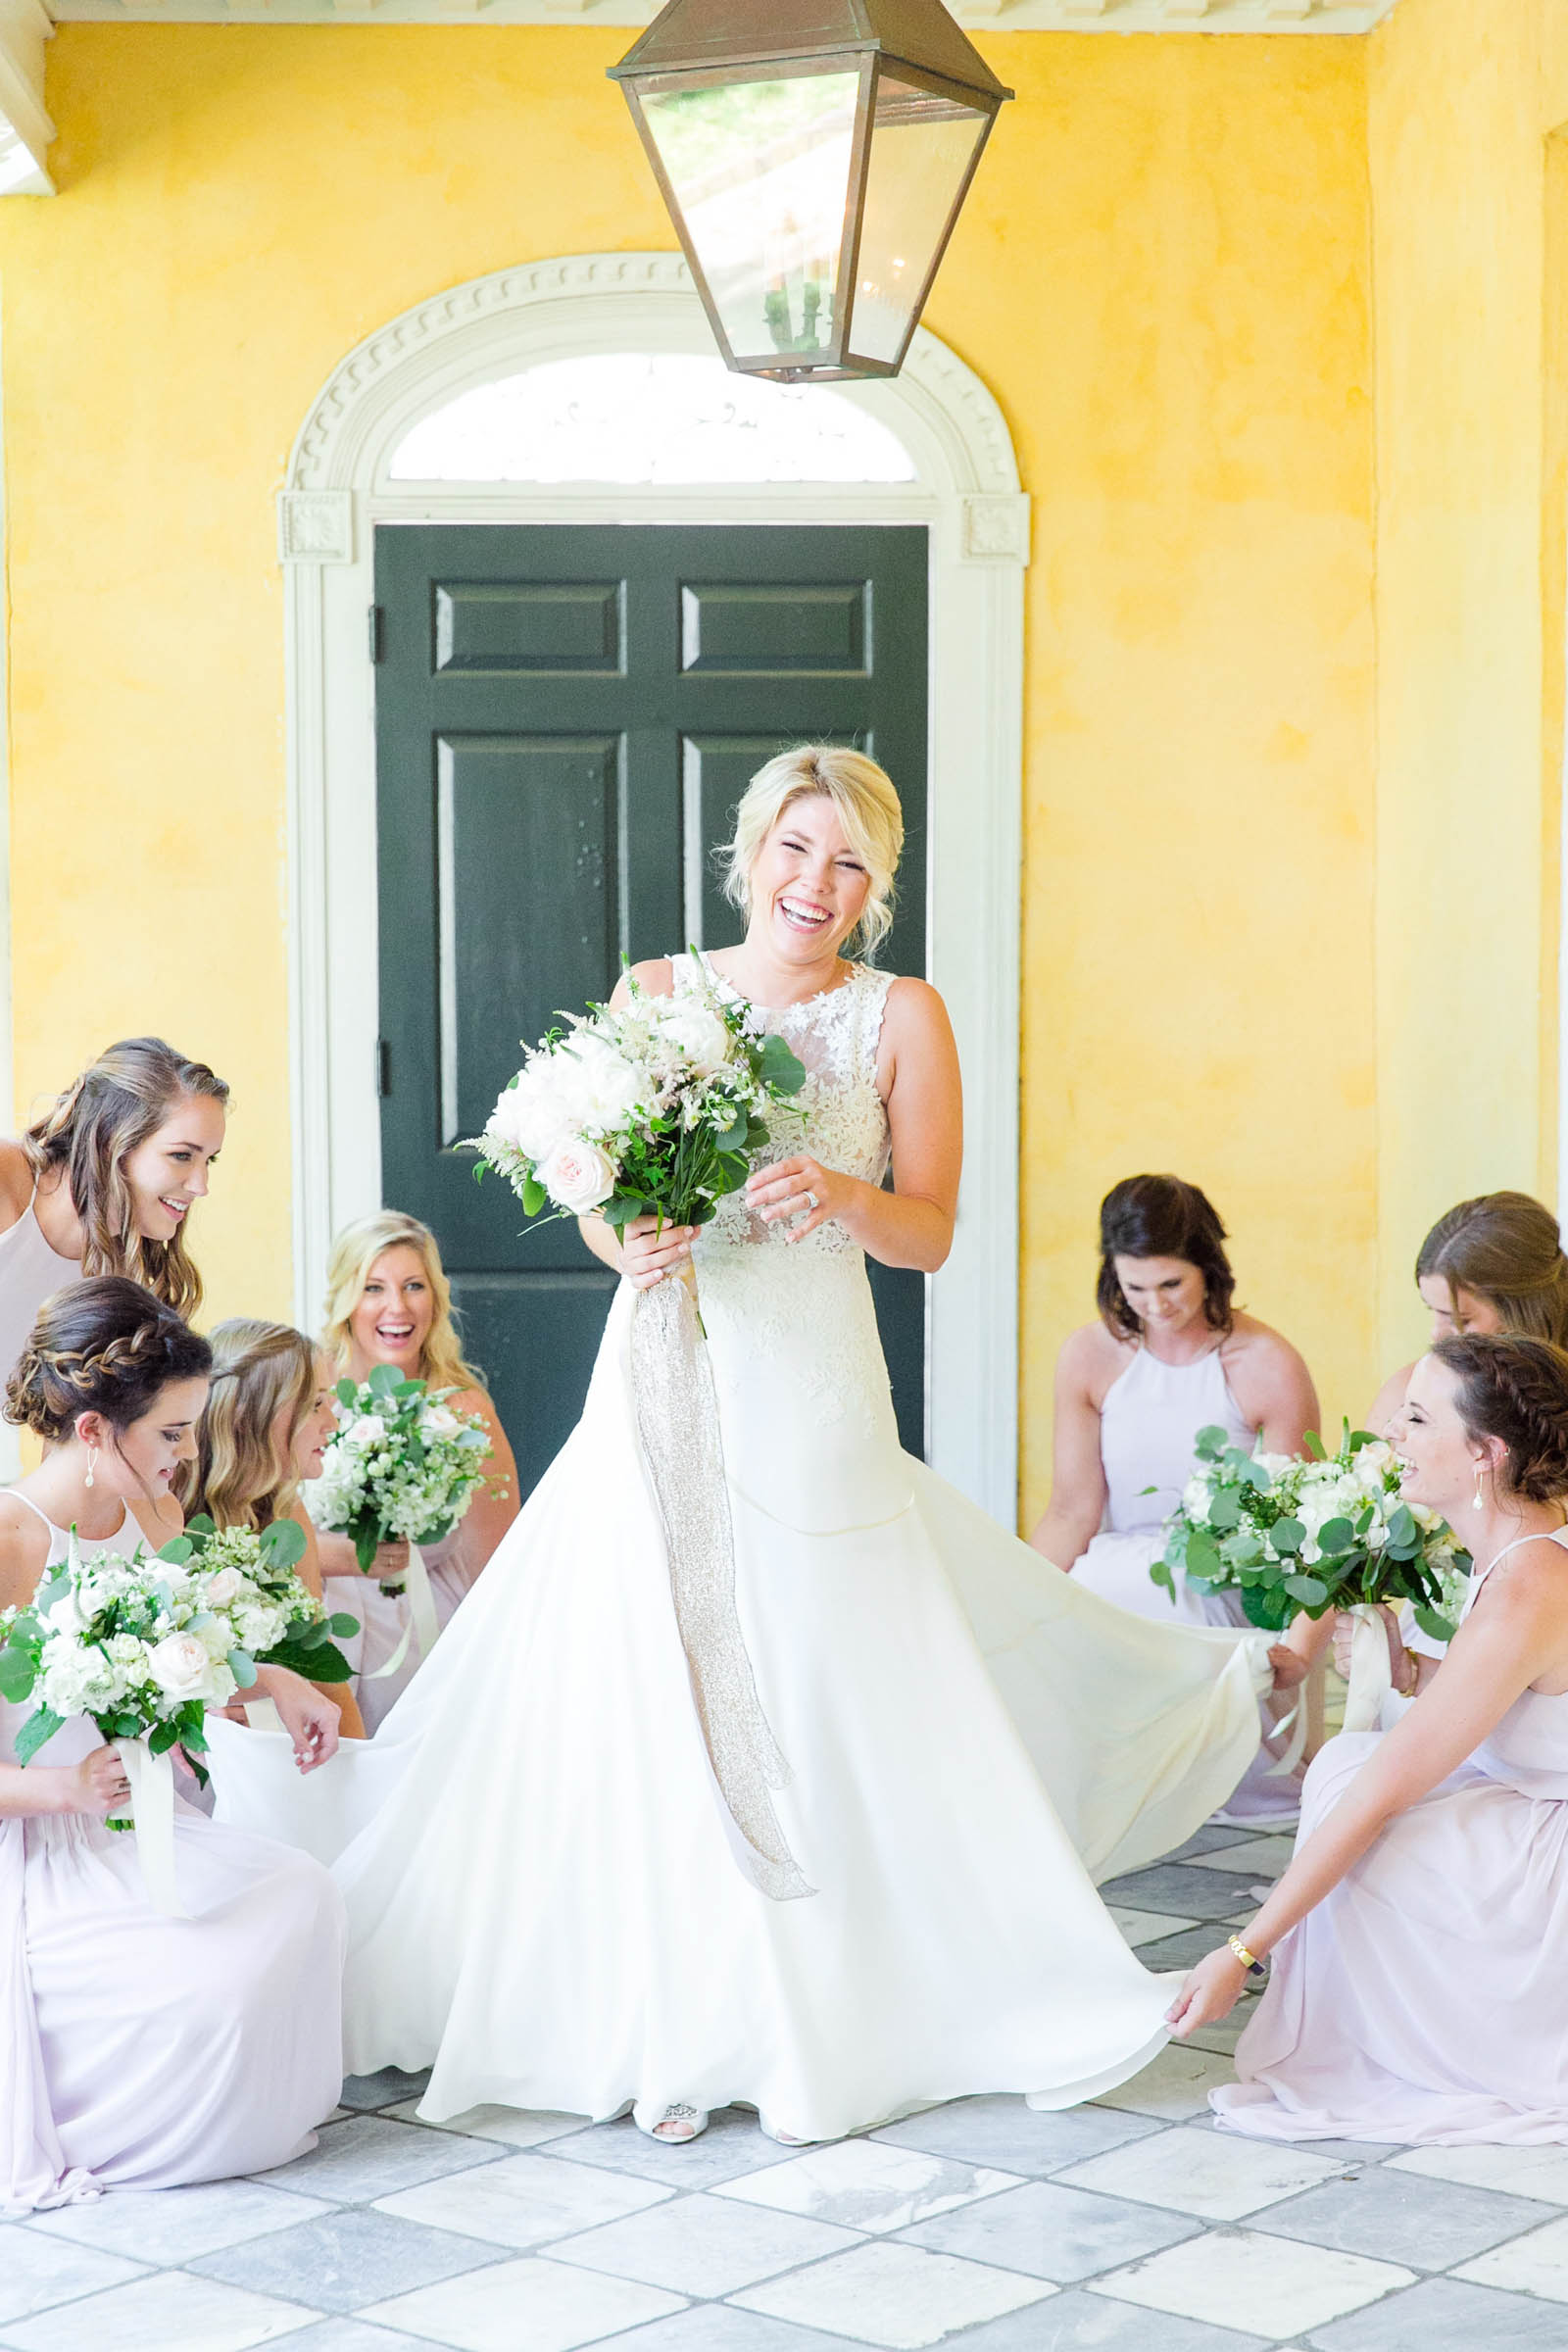 Bridal gown arranged by bridesmaids - photo by Dana Cubbage Weddings